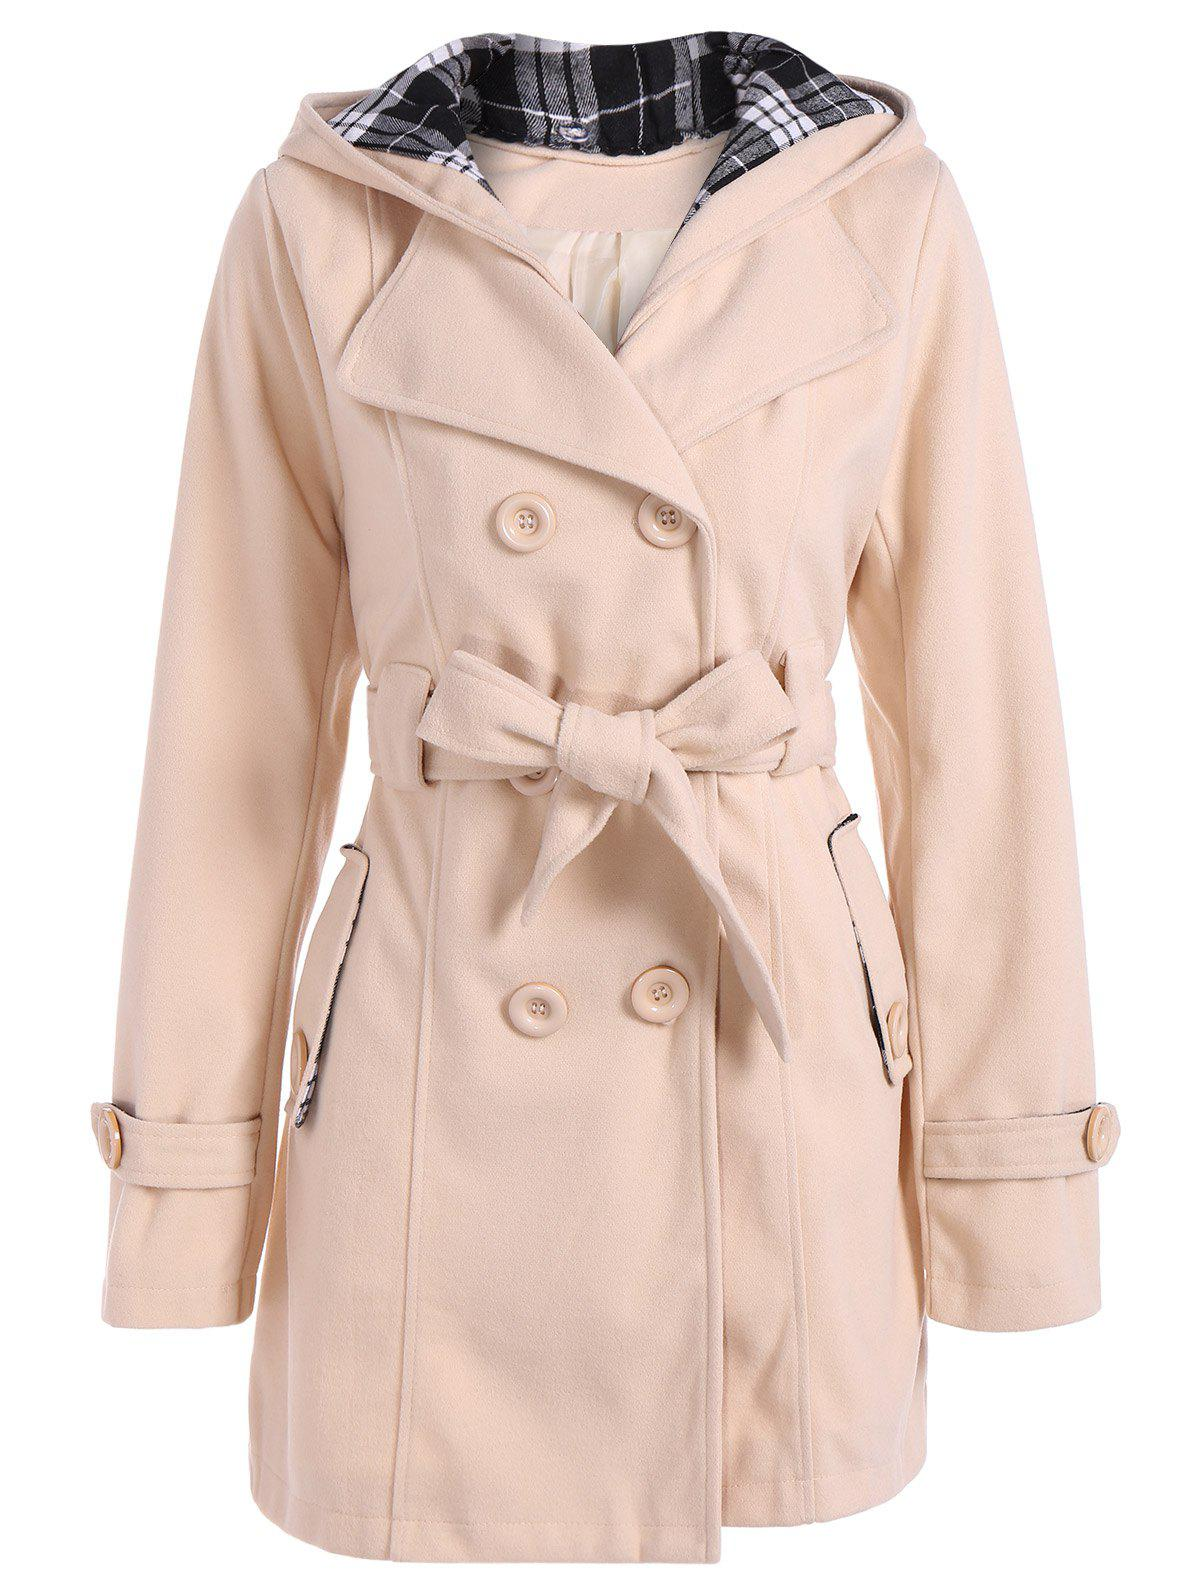 8aa46f507 53% OFF  Hooded Double Breasted Belted Long Trench Coat